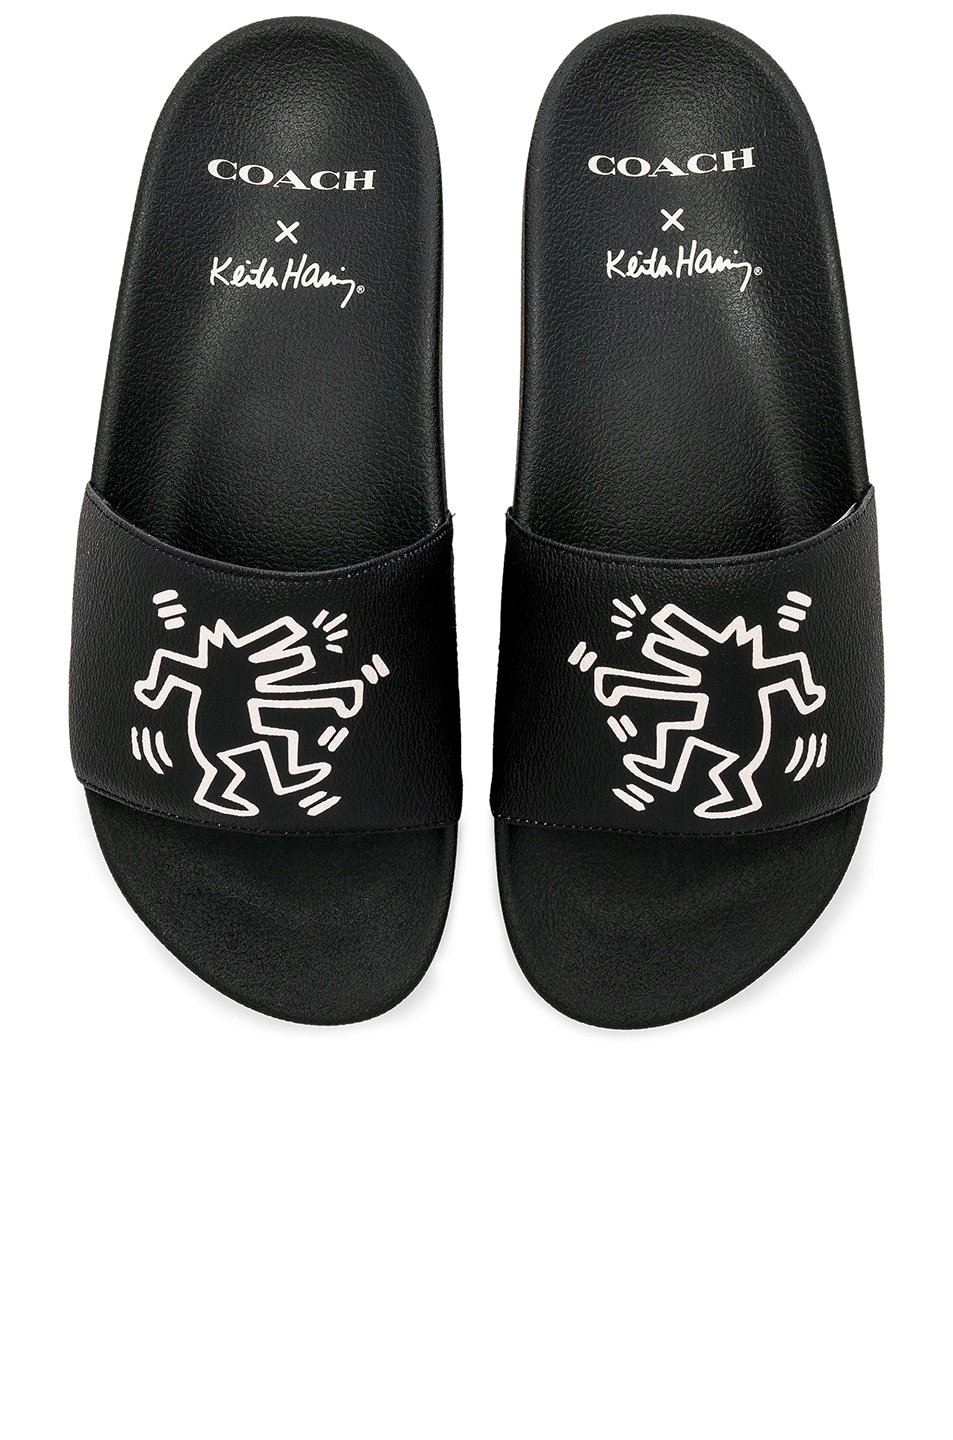 62412d7af764 Image 1 of Coach 1941 x Keith Haring Barking Dog Slides in Black